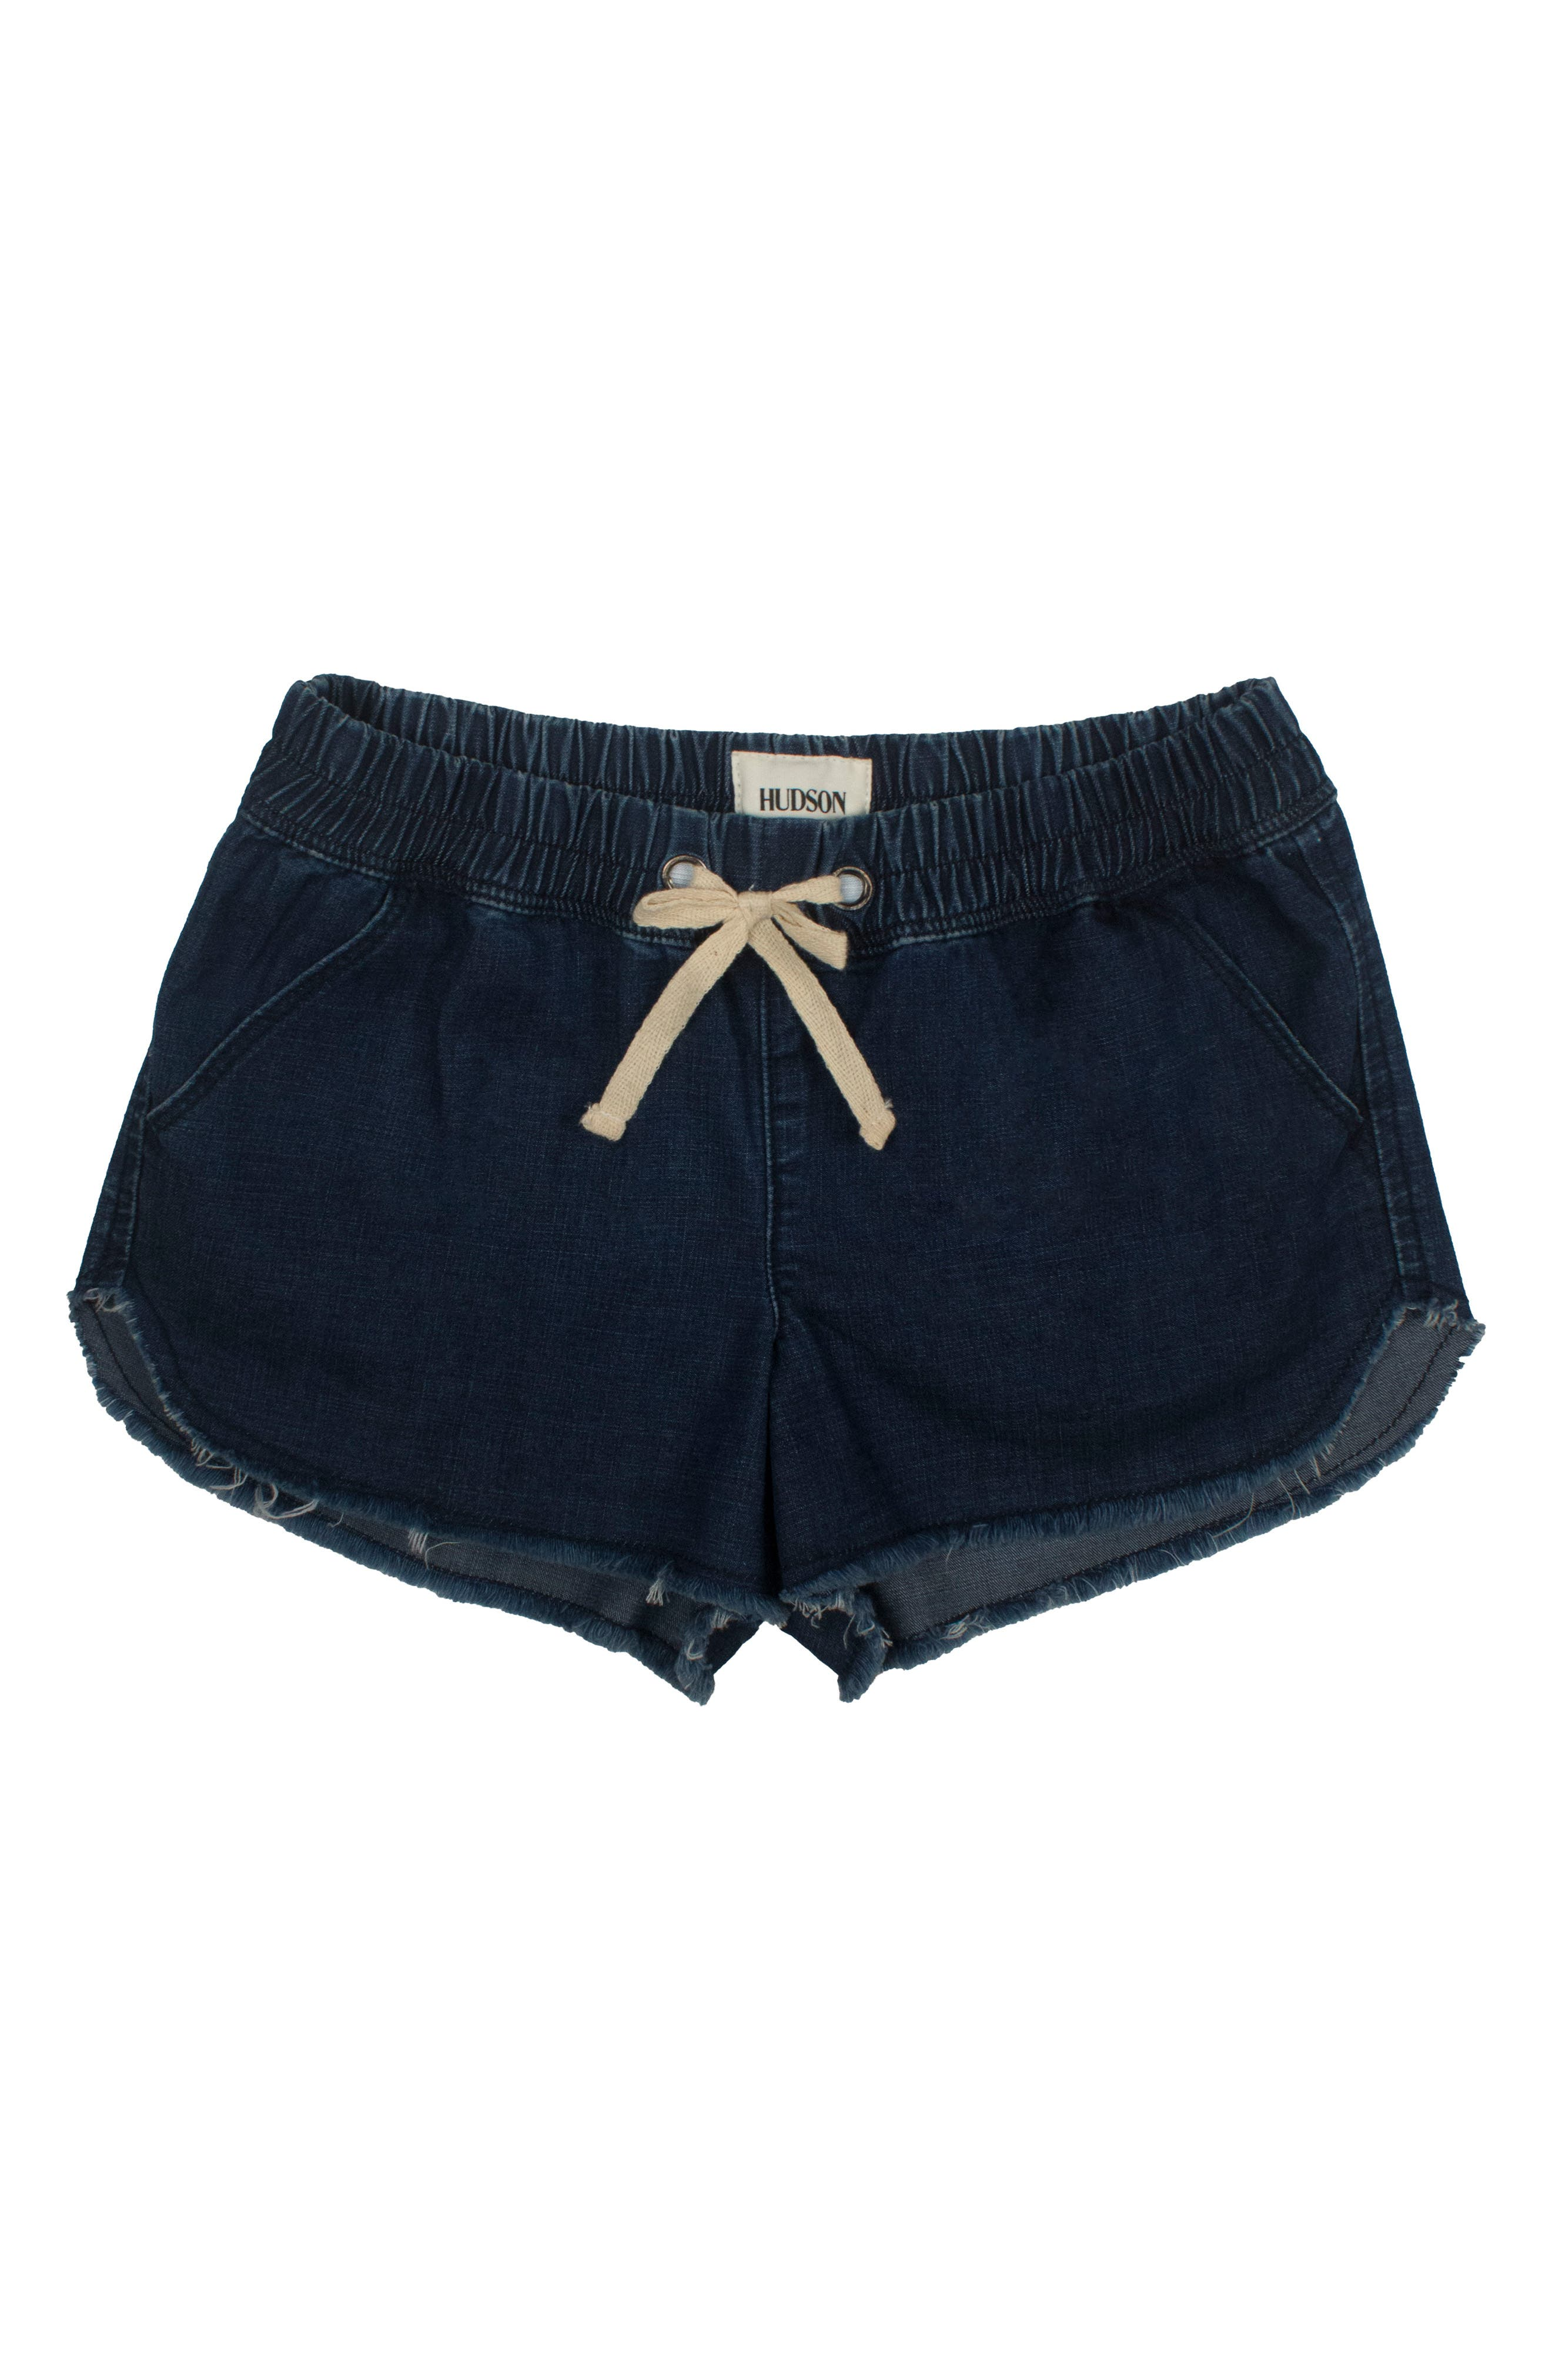 Hudson Kids Frayed Denim Jog Shorts (Big Girls)